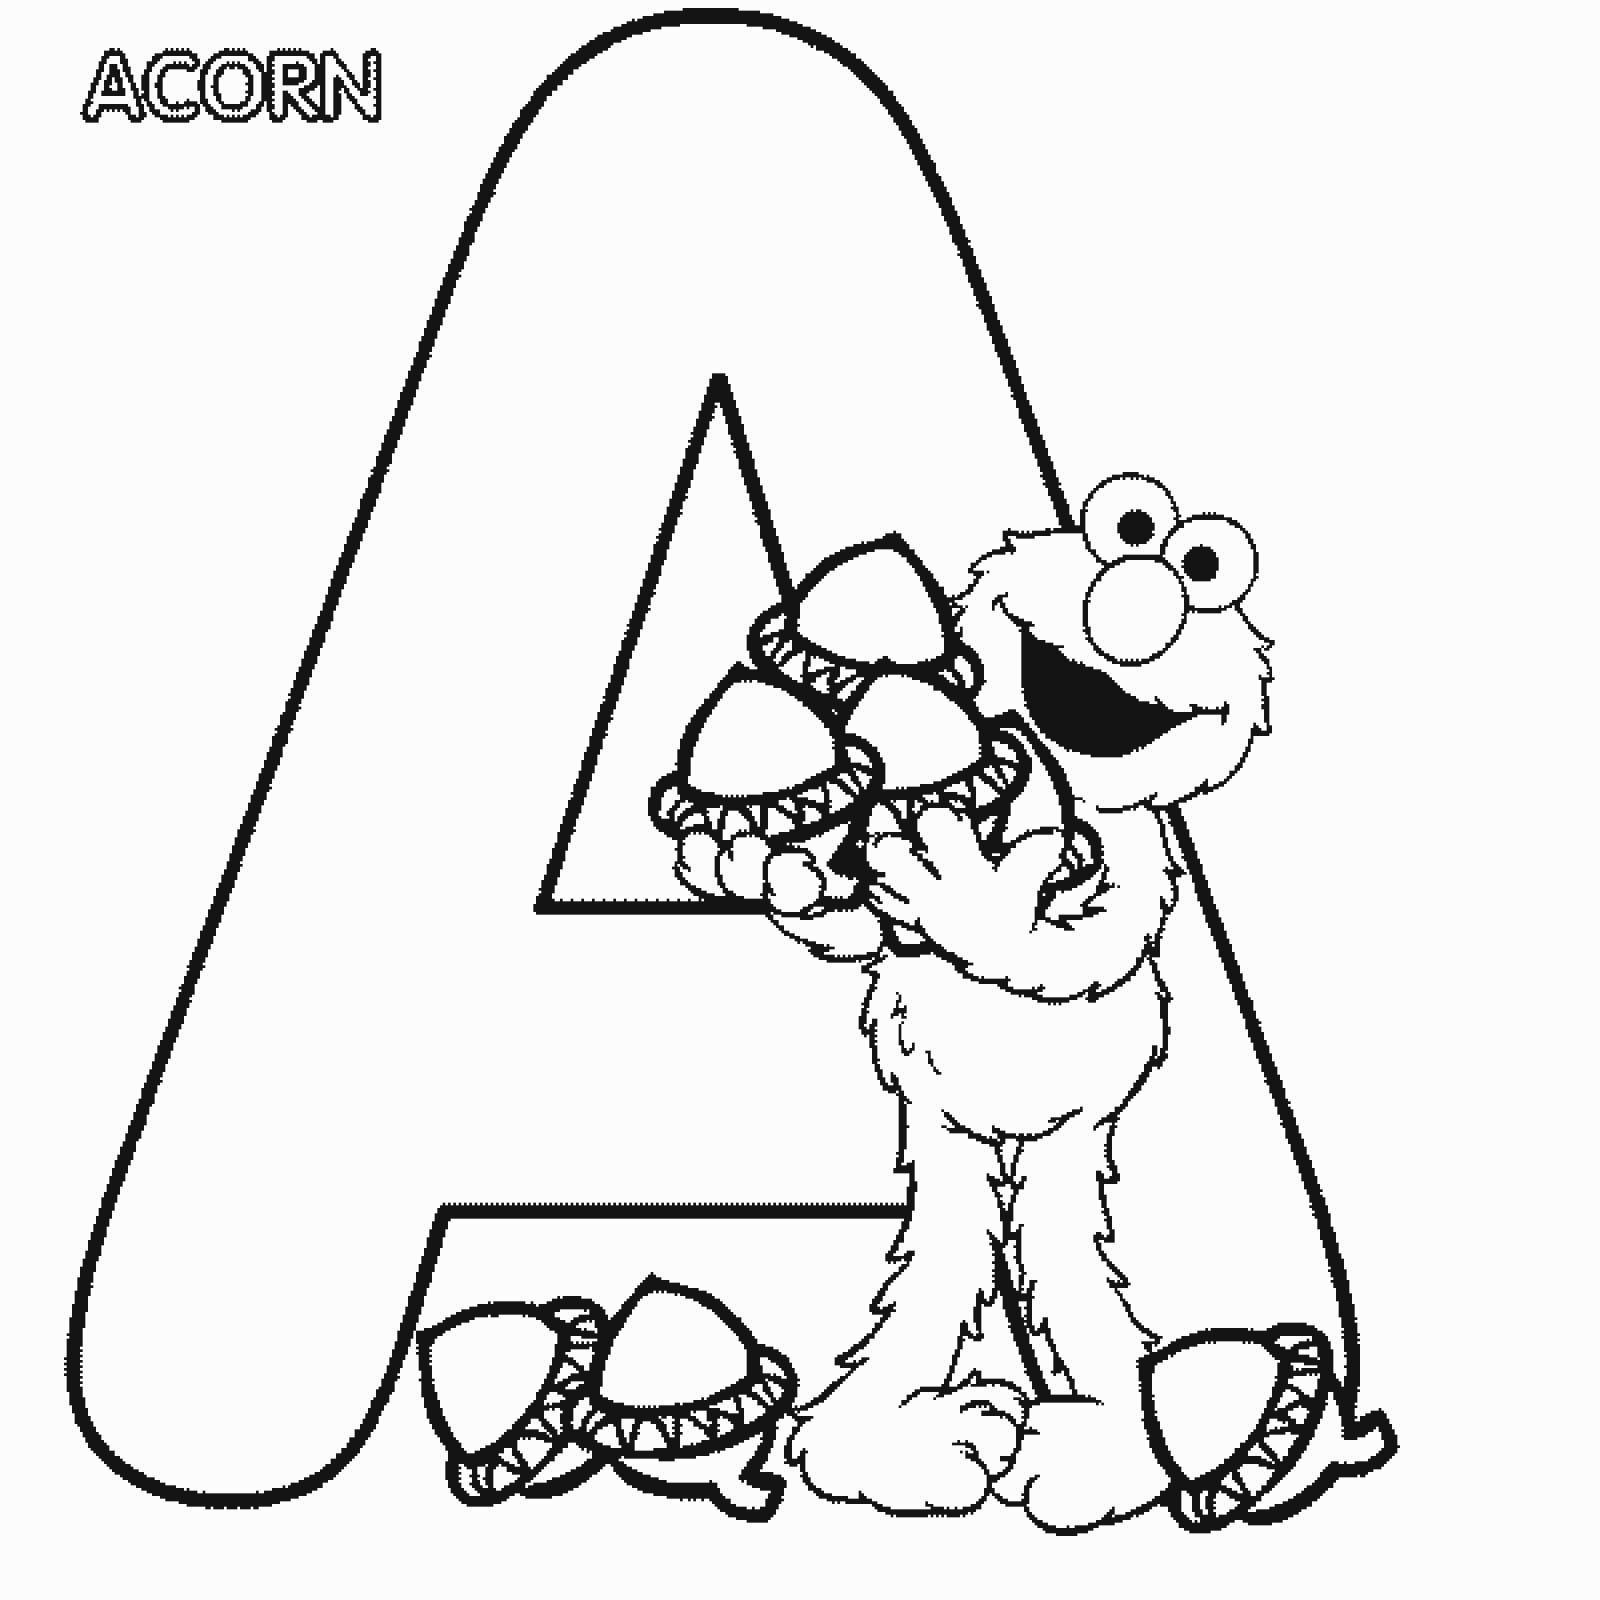 Elmo Alphabet Coloring Pages Coloring Home Free Printable Coloring Pages For